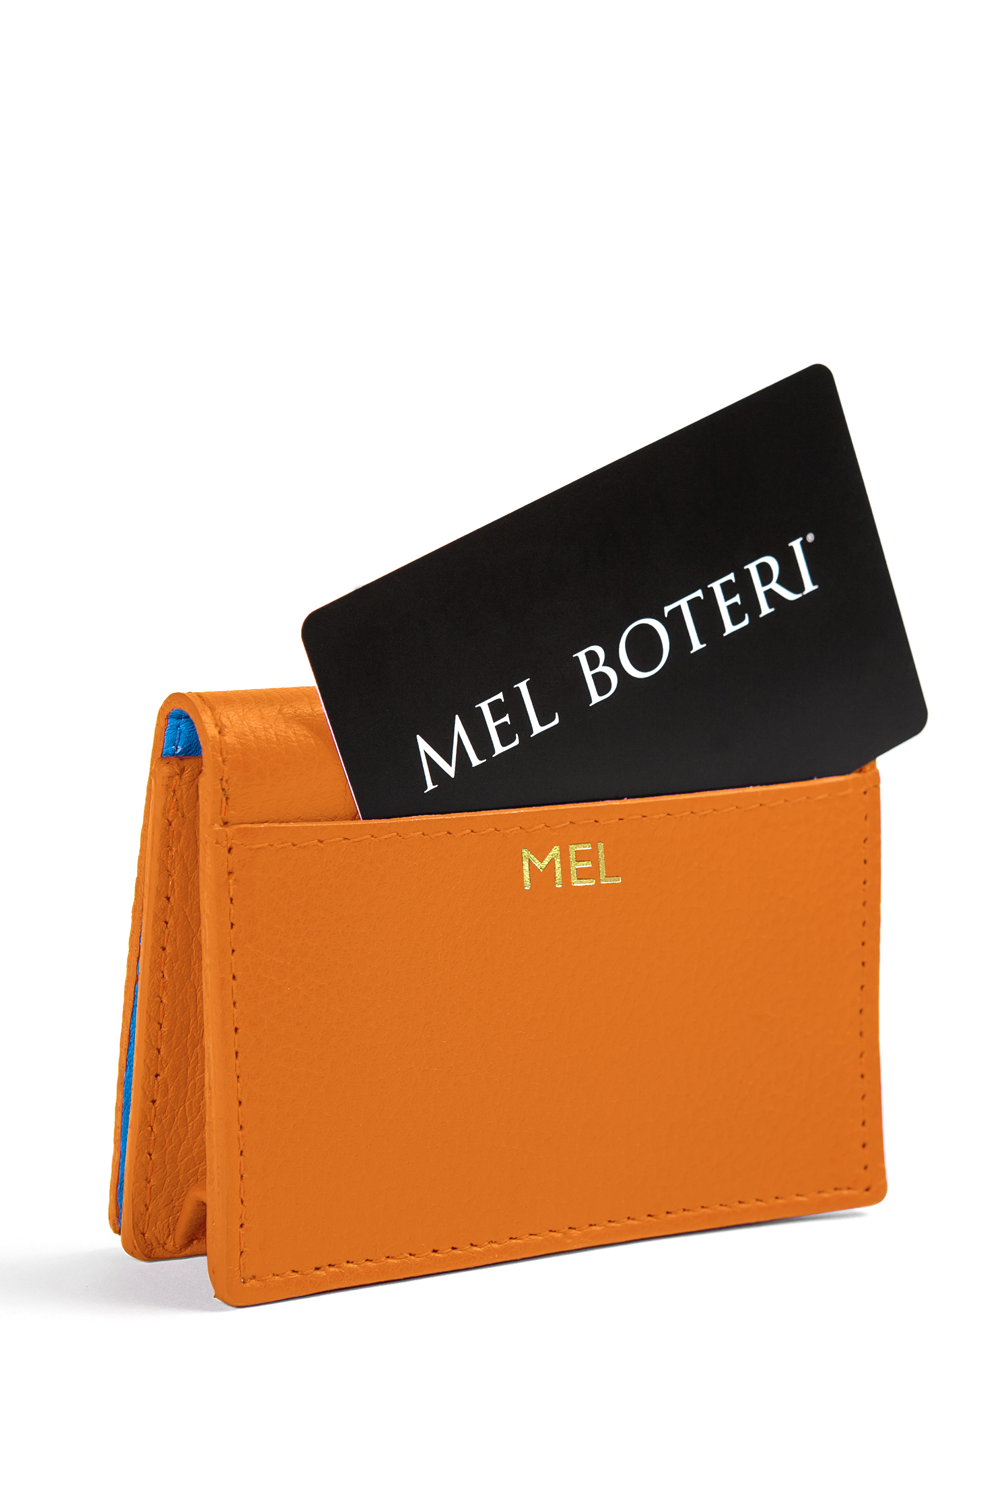 The Mel Boteri Leather Card Holder | Tiger Leather With Gold Monogram | Mel Boteri Gift Ideas | Design Your Own